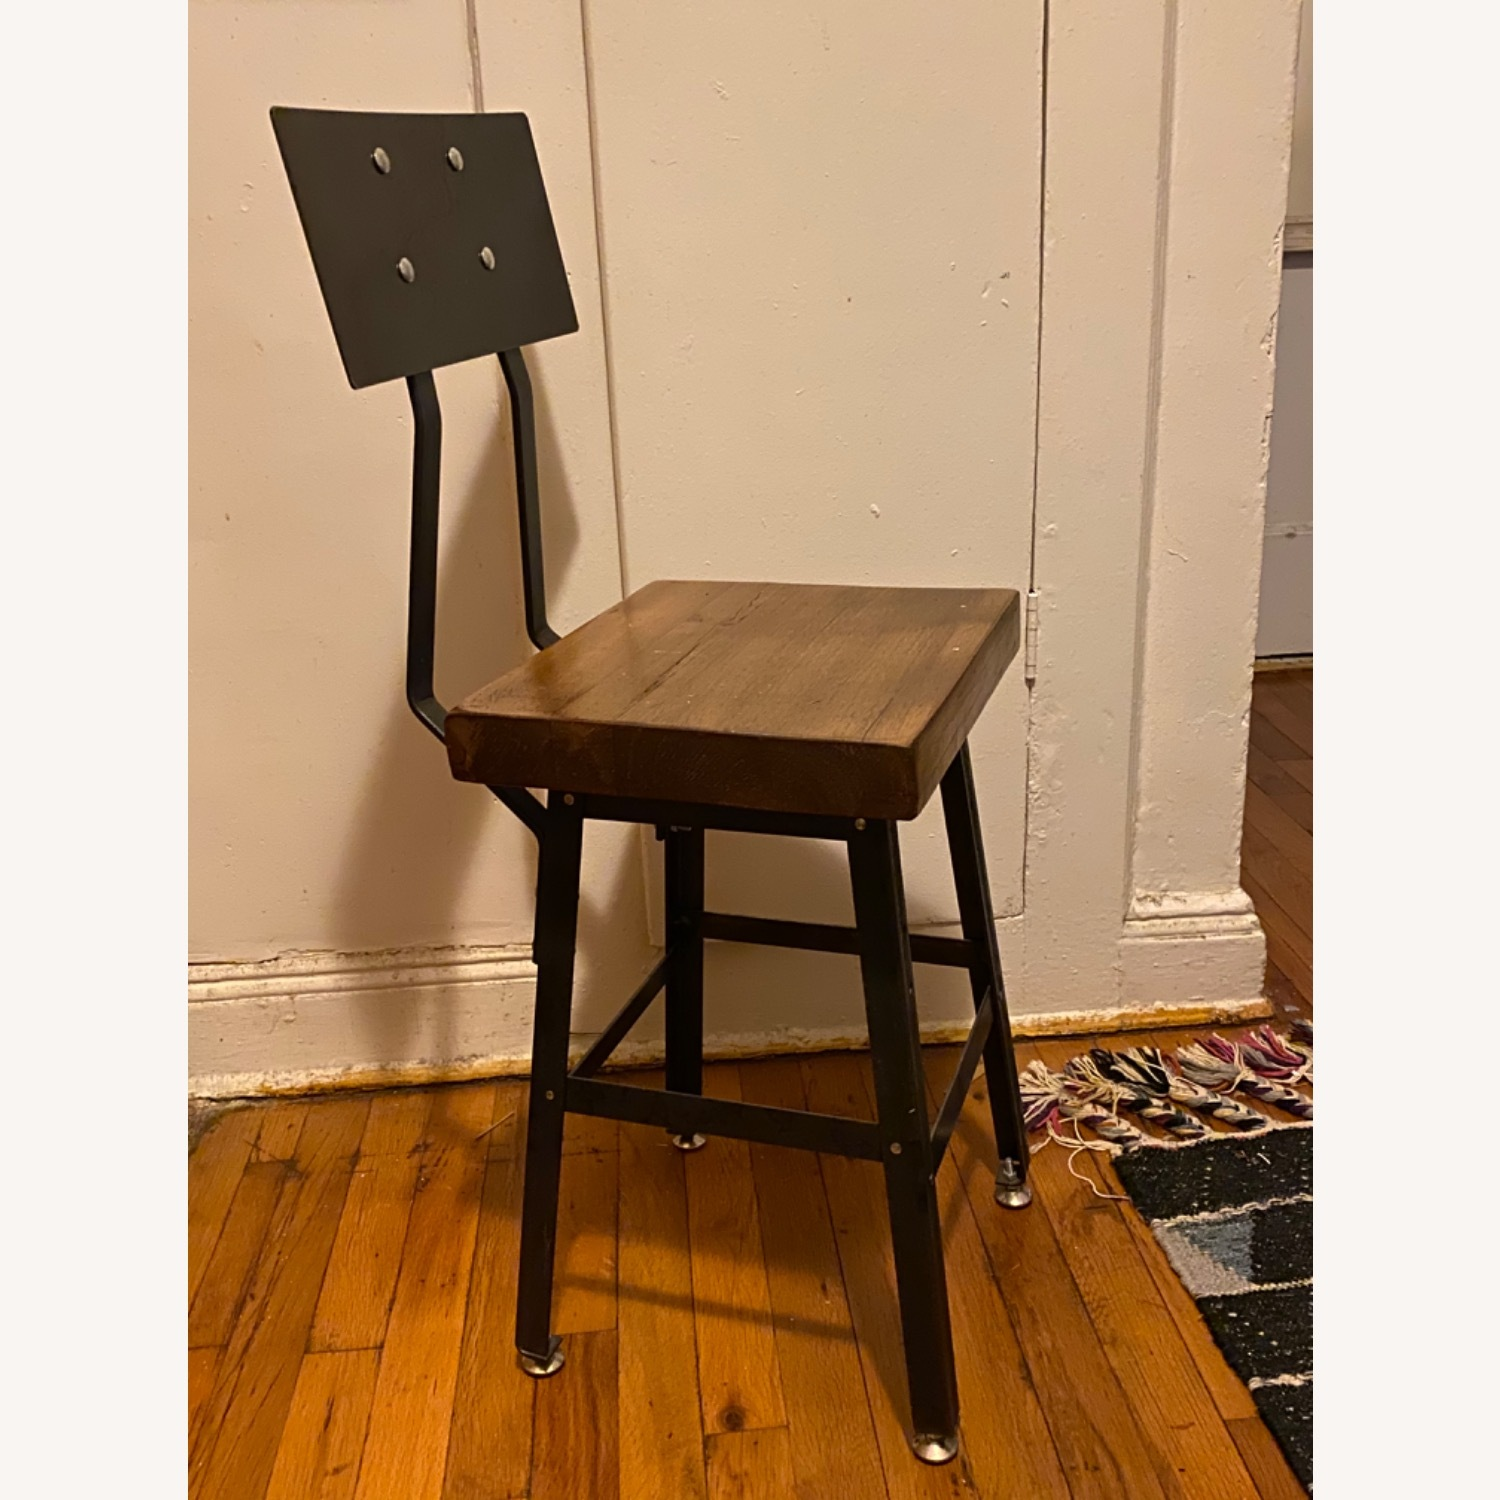 Handmade Reclaimed Solid Wood Dining Chair Set - image-1